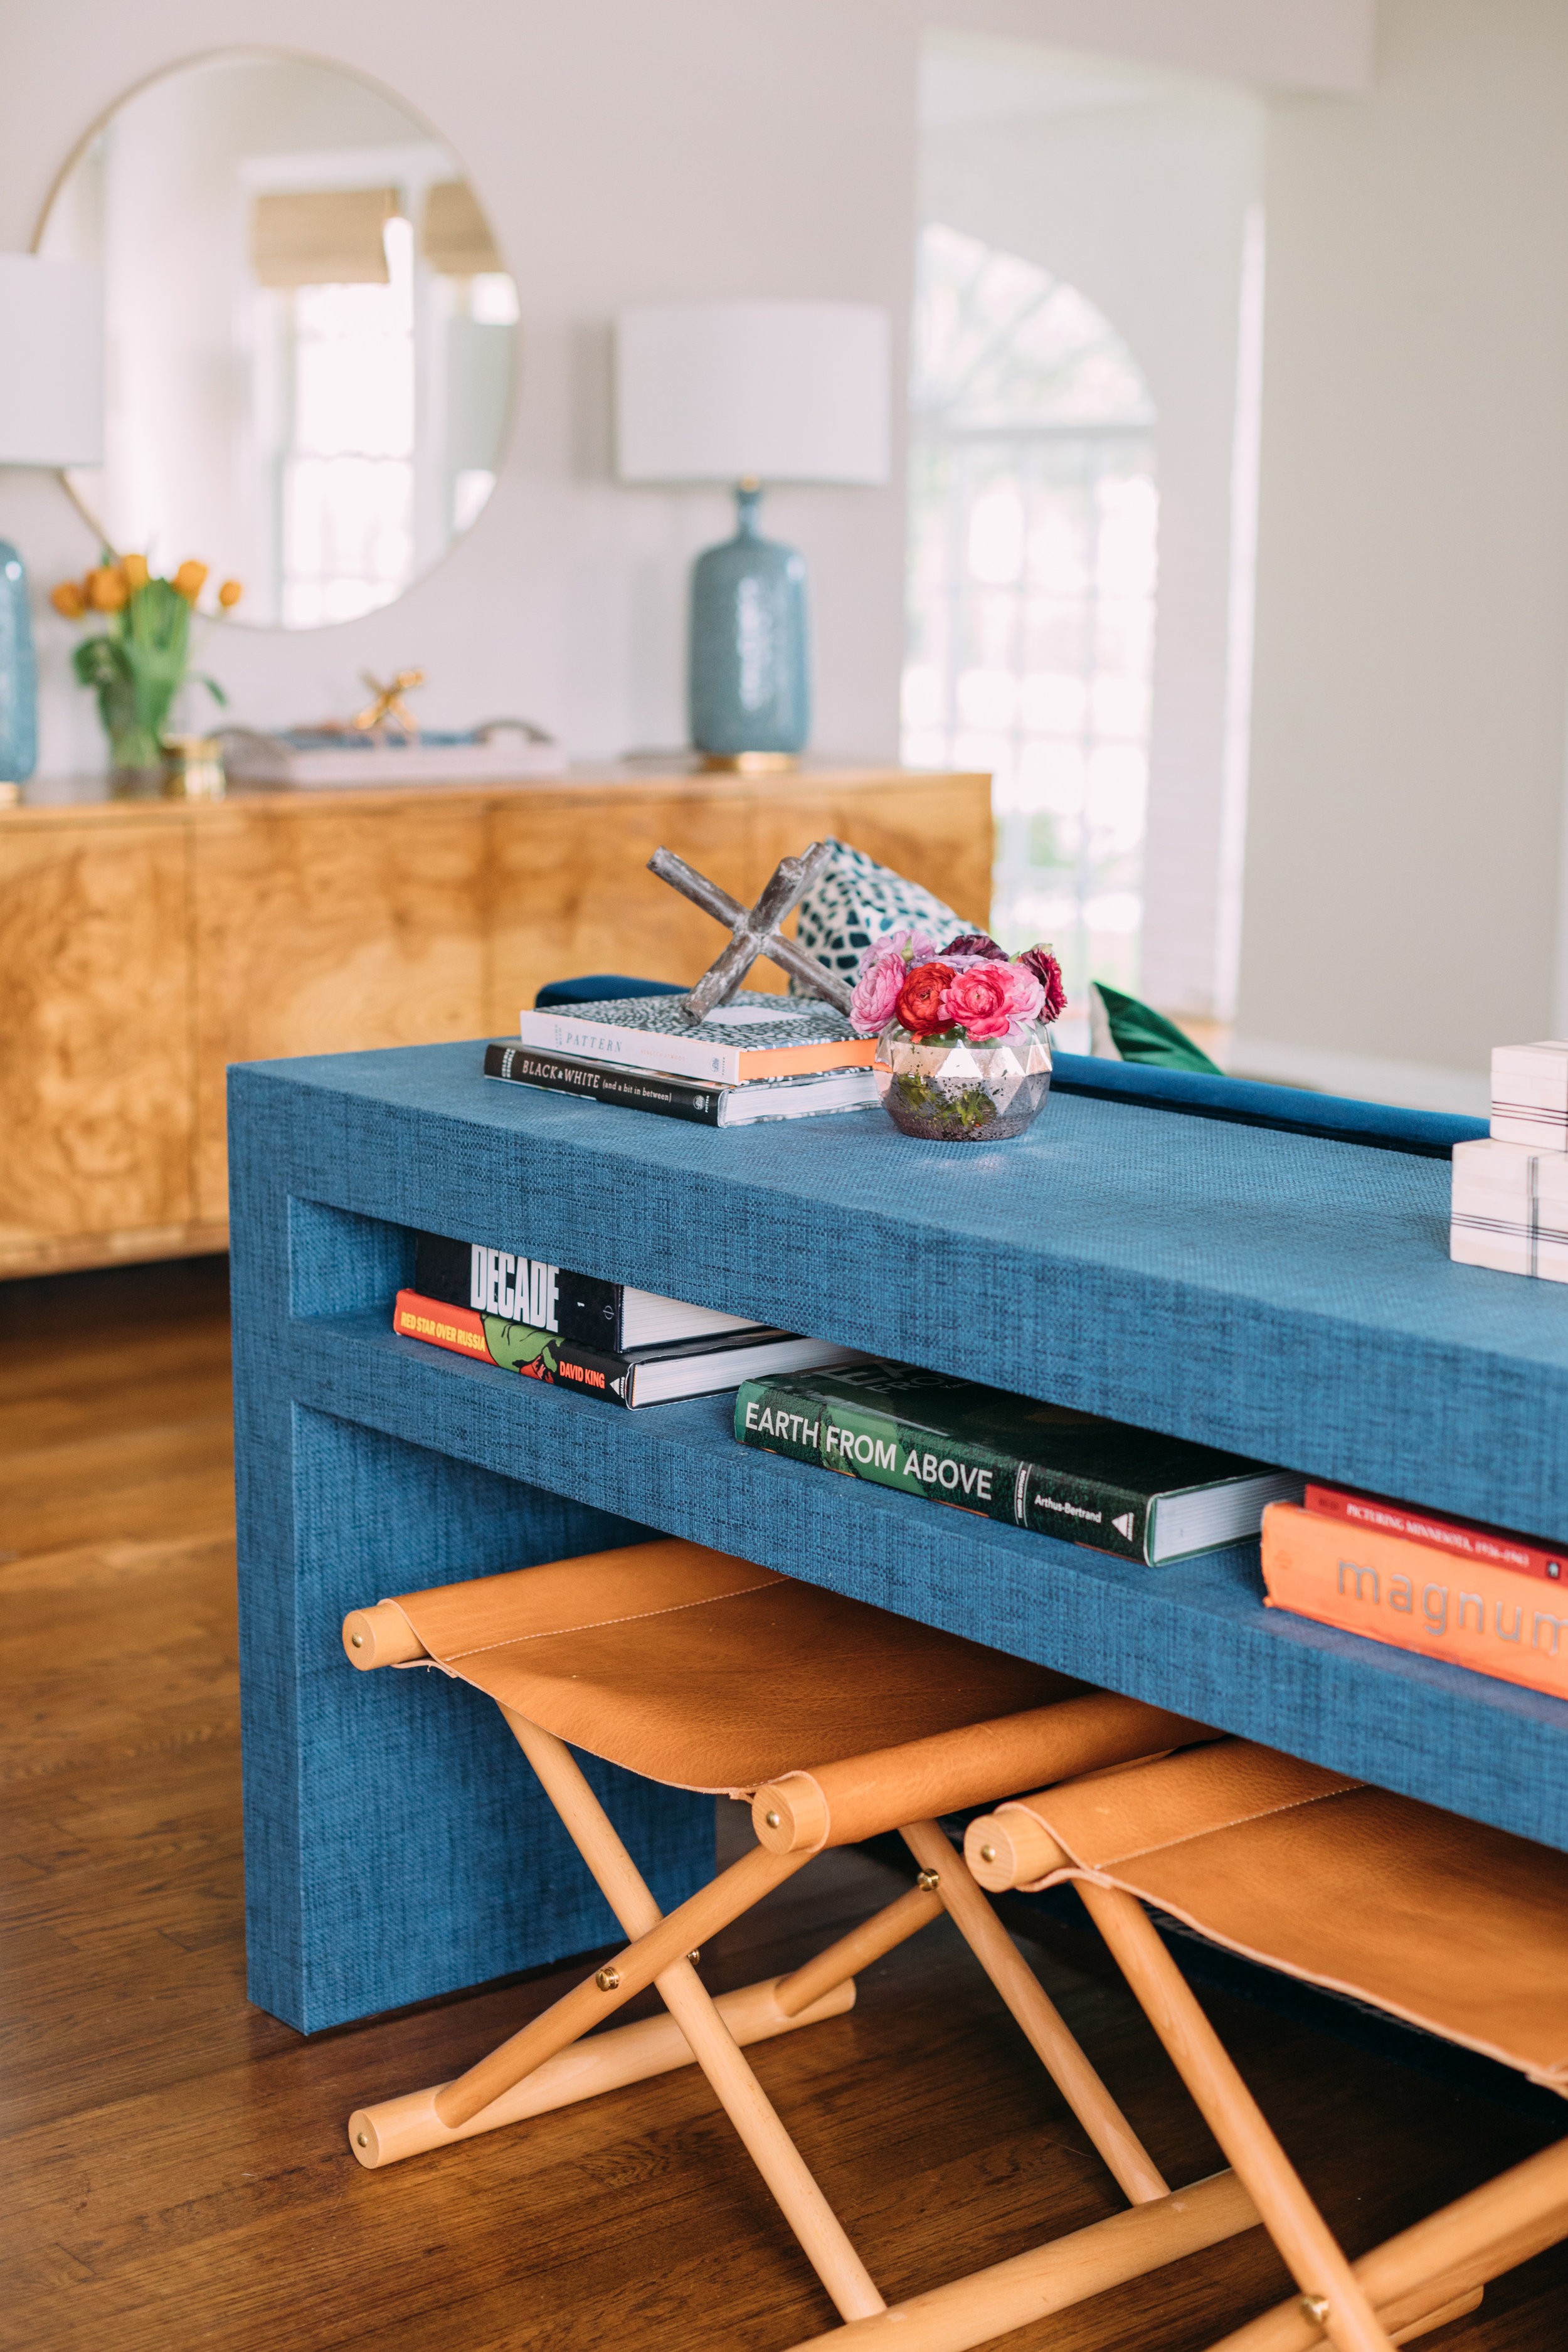 CEH Dollins in burlwood + CEH papered 2 shelf console as photographed by Kelly Christine Sutton, Work of Katie Davis Design